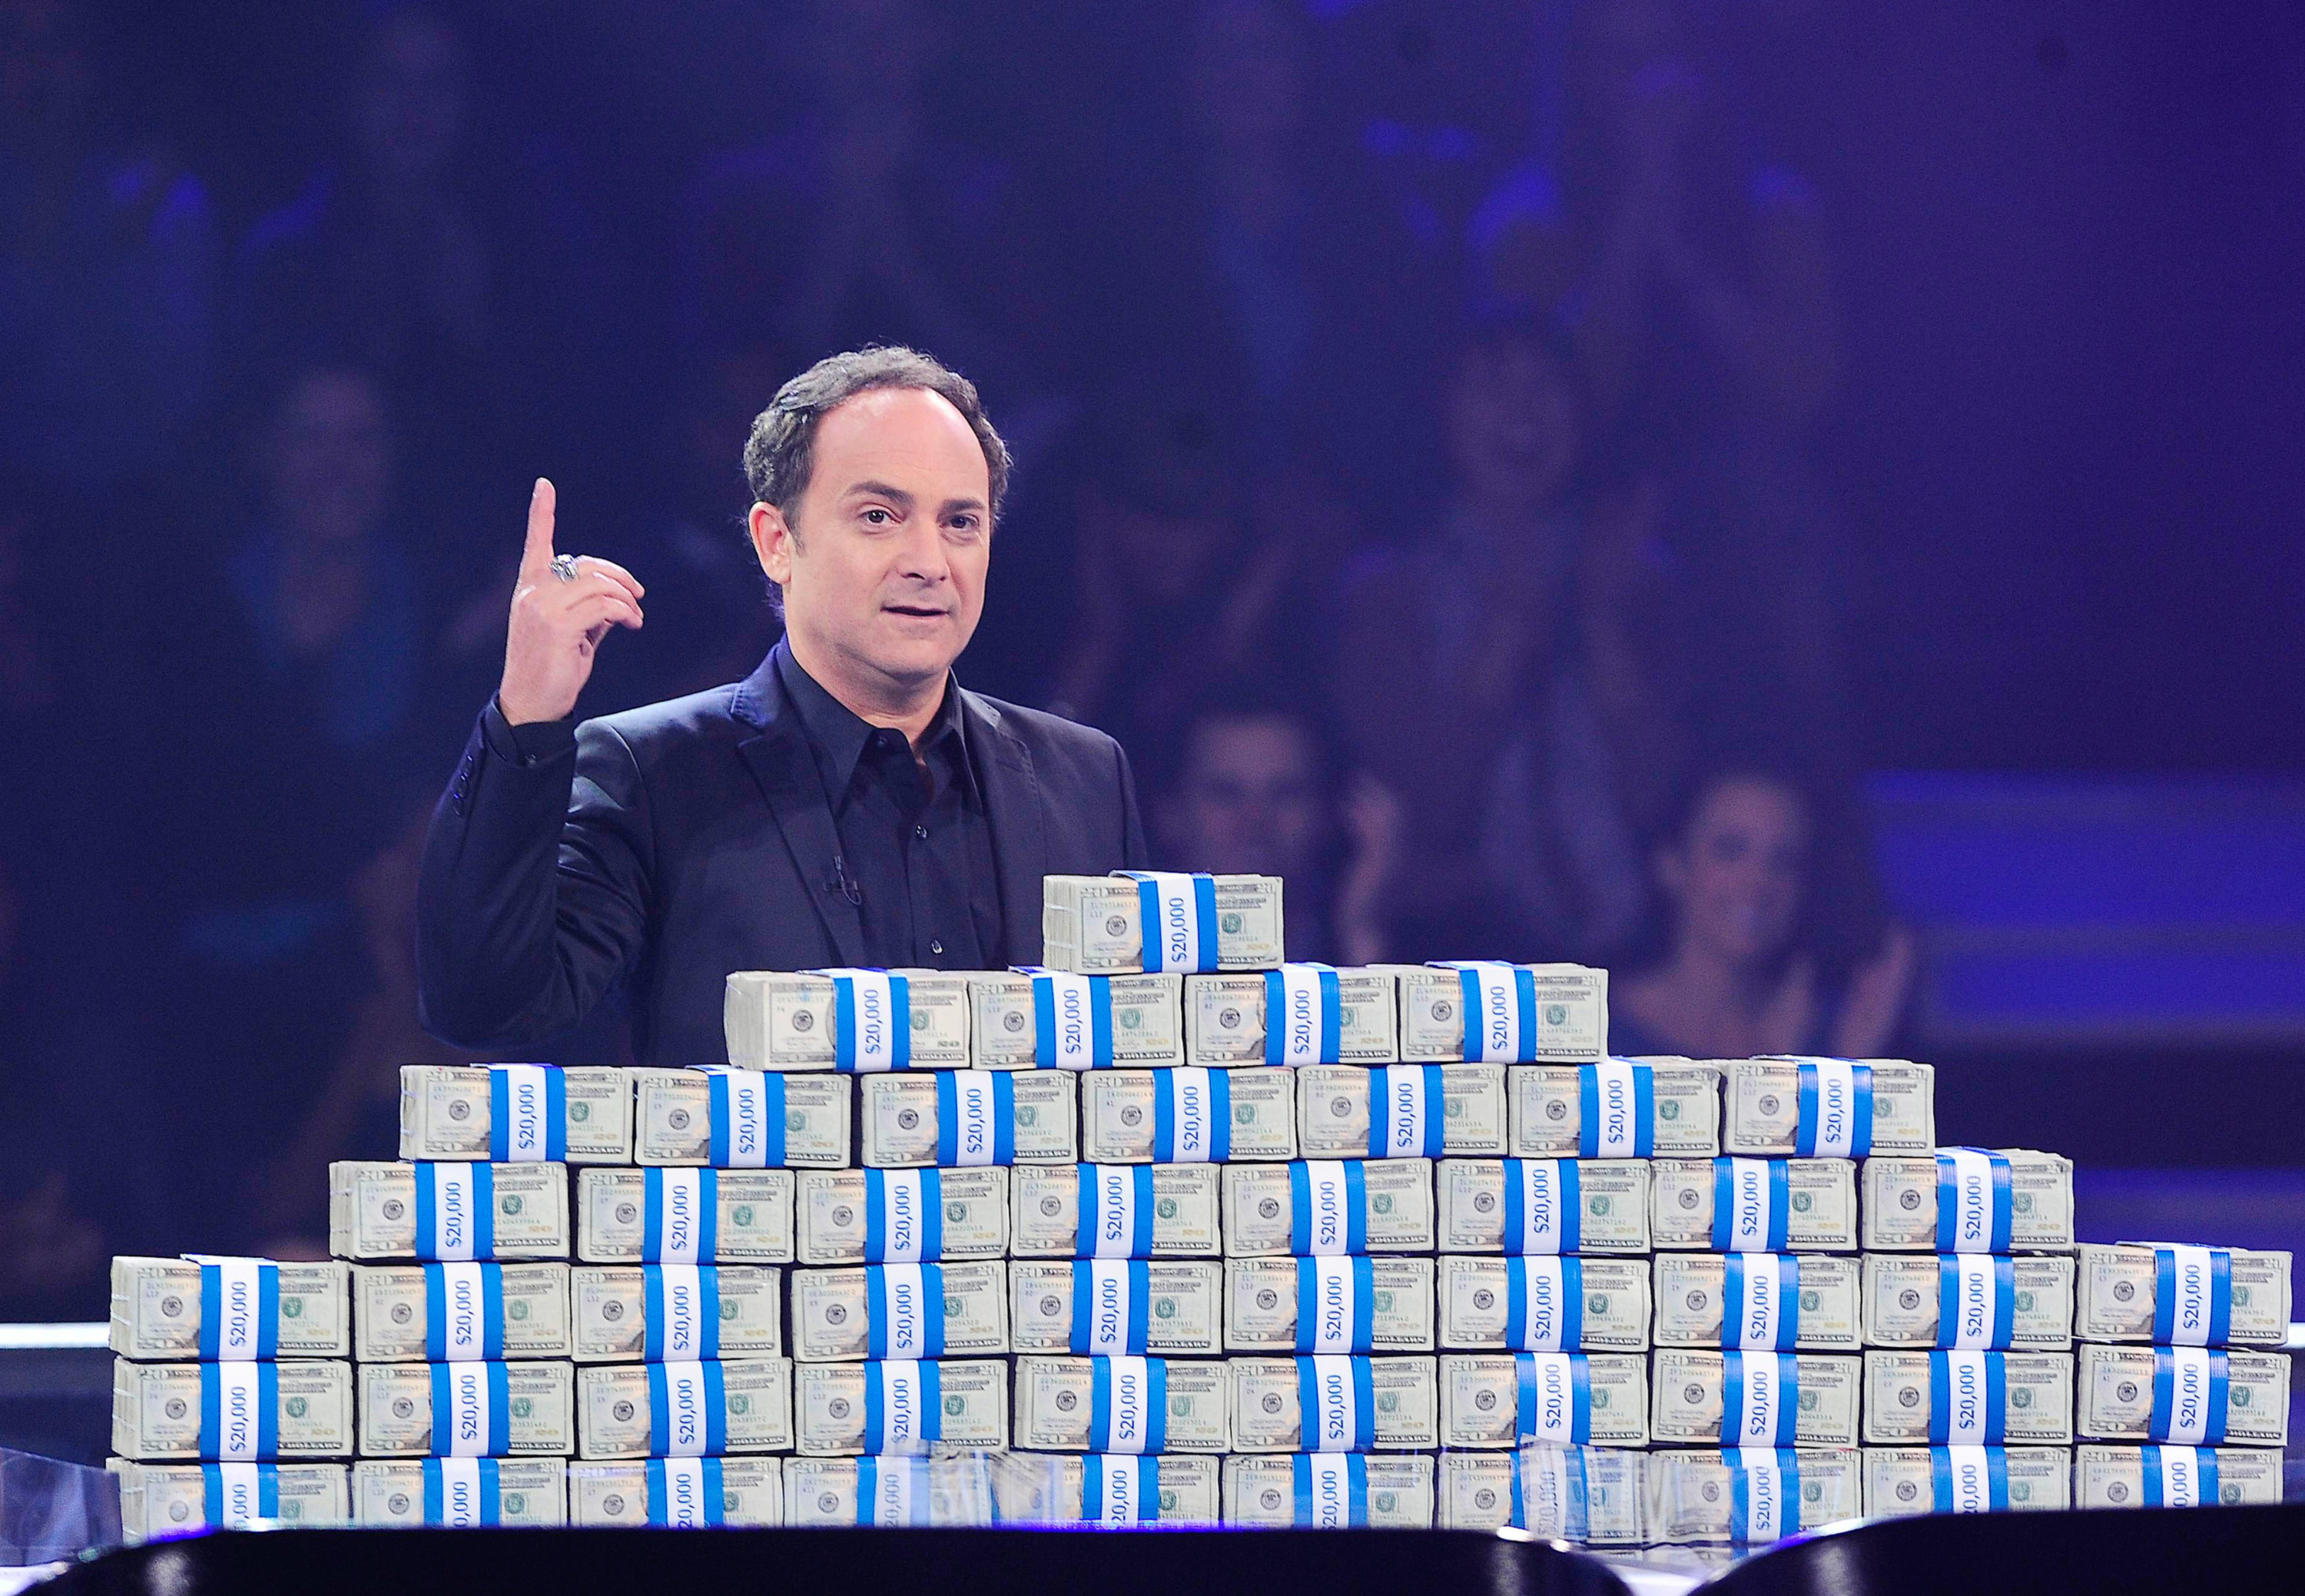 Kevin Pollak standing behind piles of cash